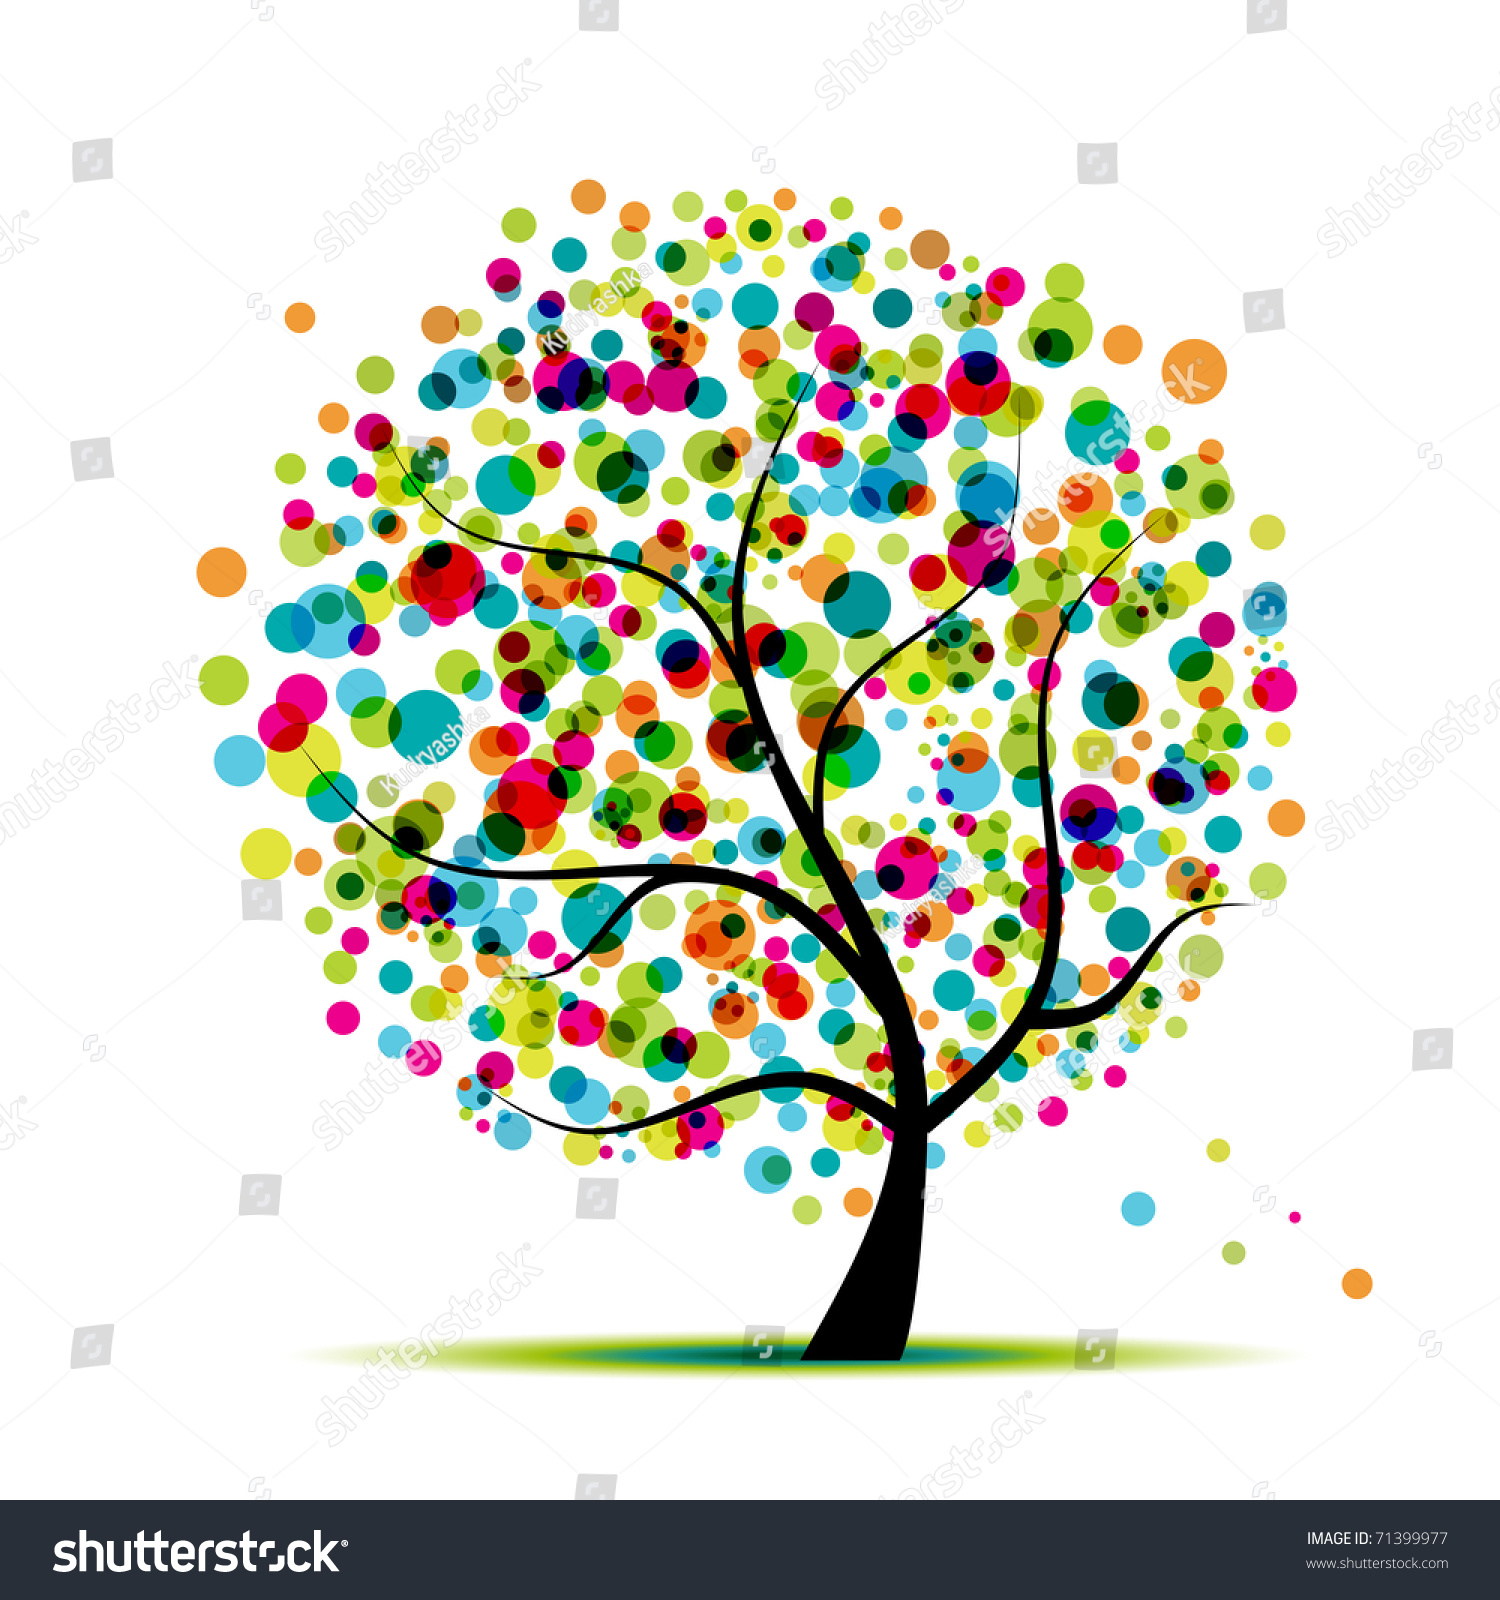 Spring Tree Clip Art spring tree stock vectors & vector clip art ...